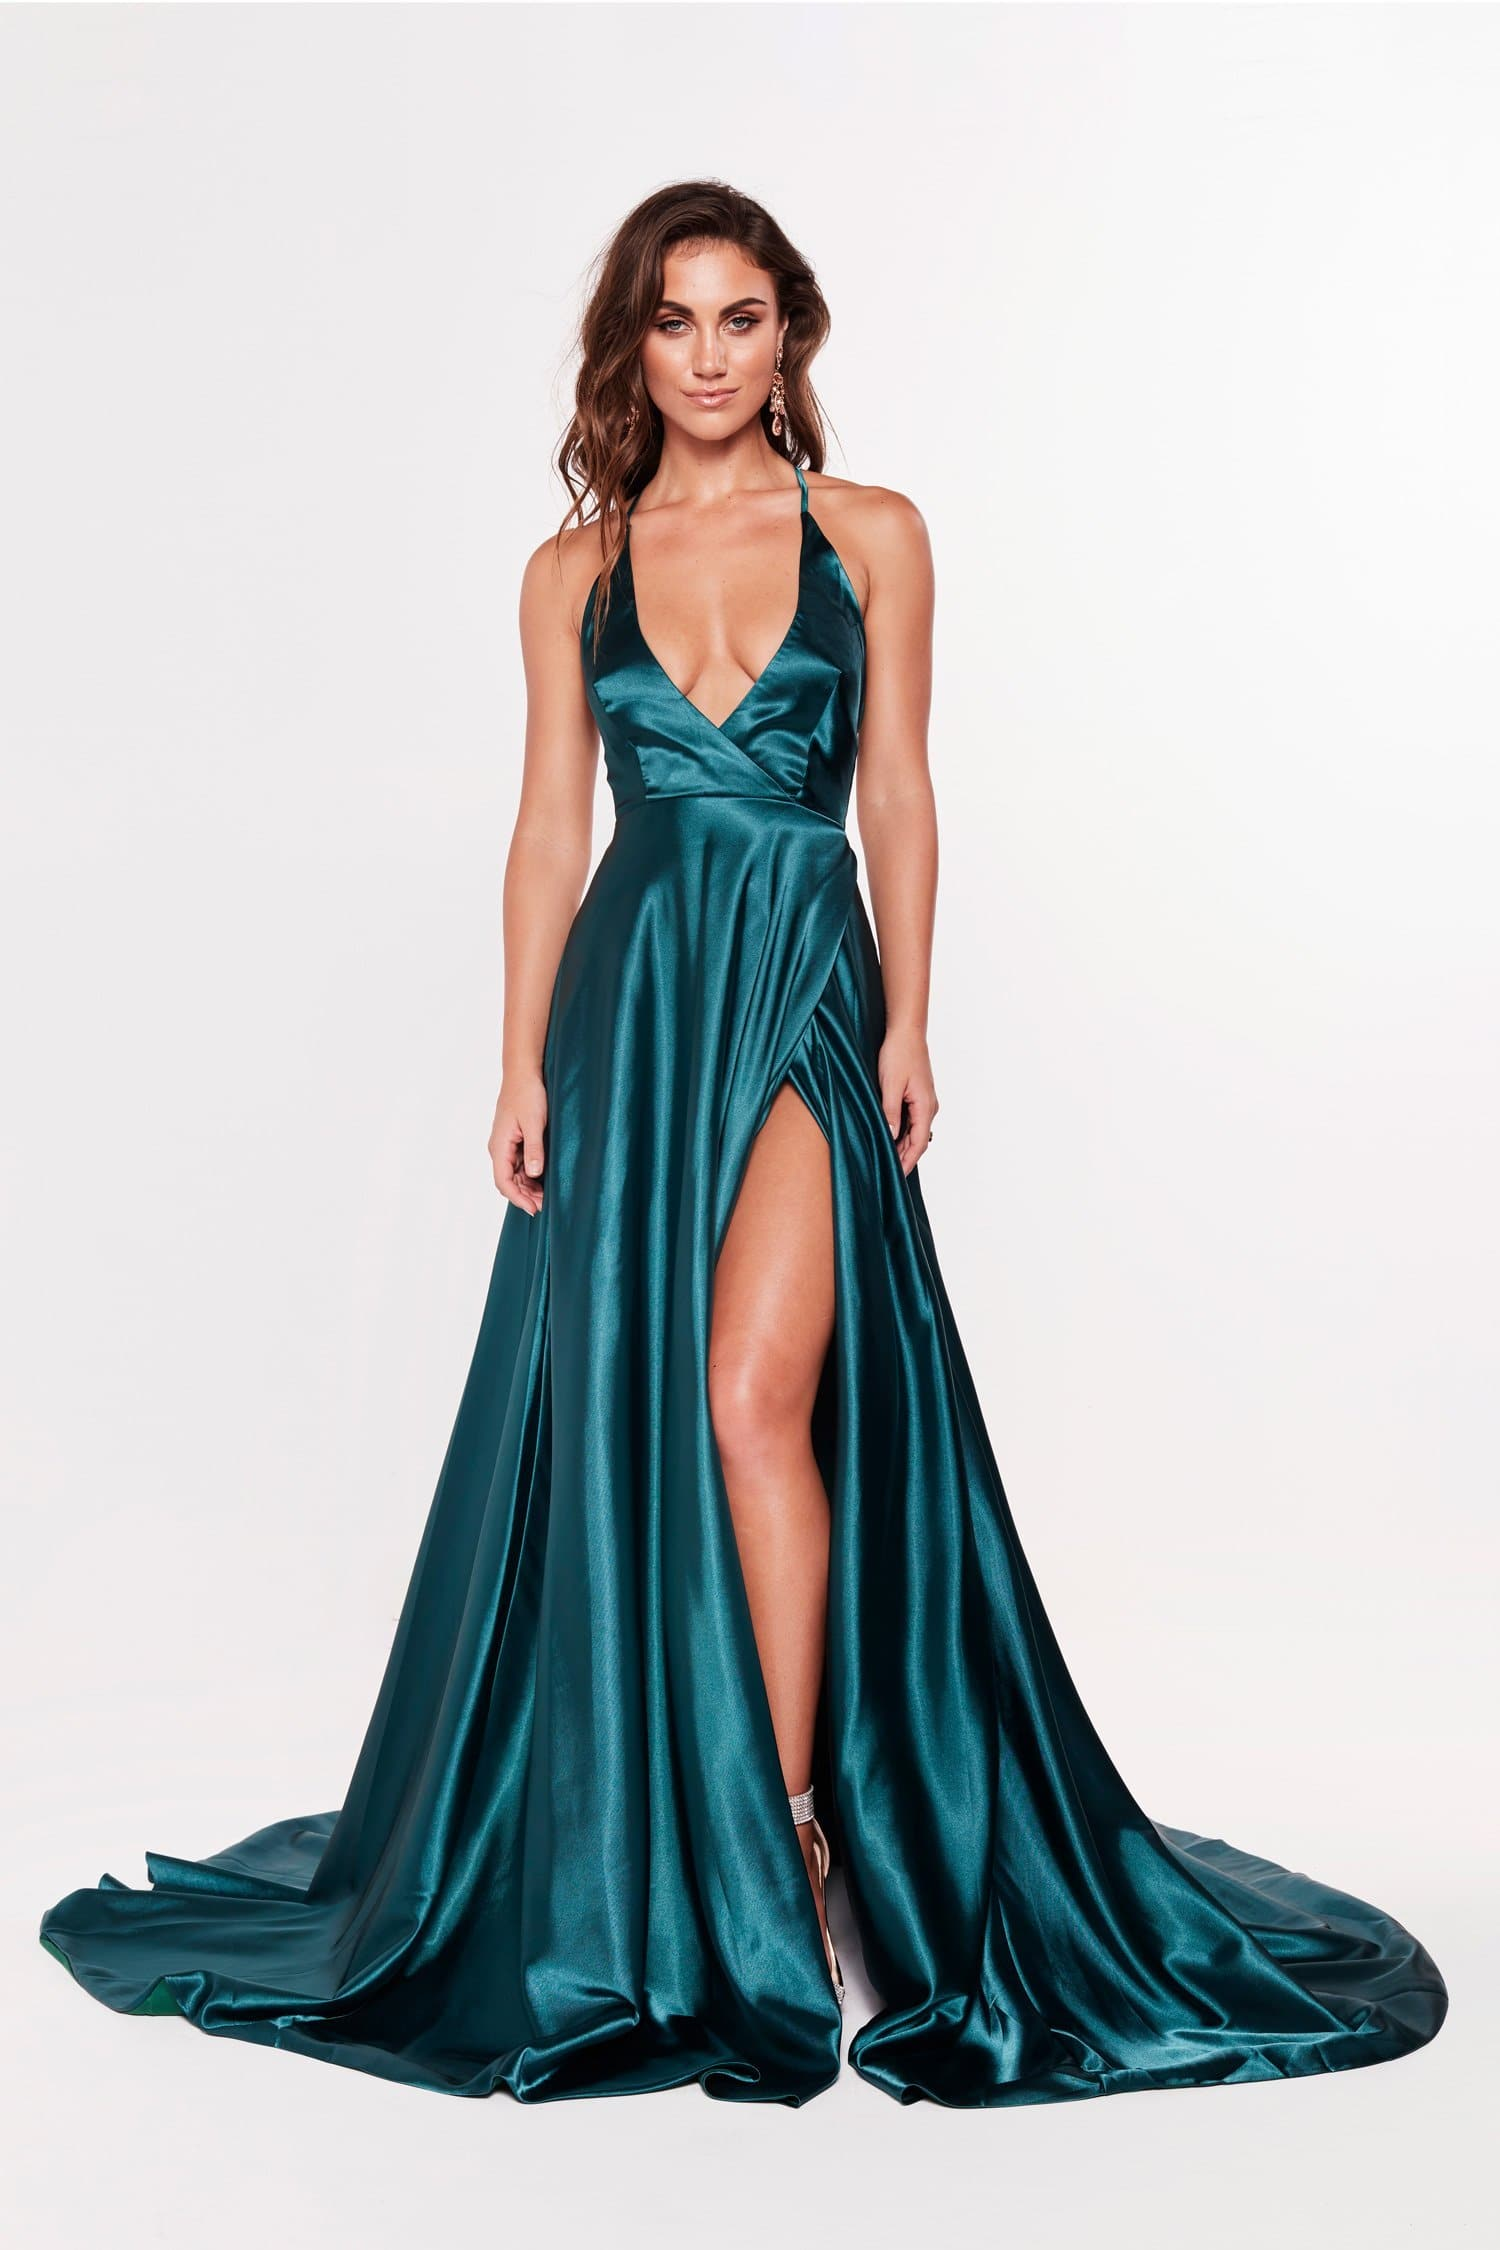 A&N Dimah - Satin Formal Gown with Plunge Neck and Side Slit